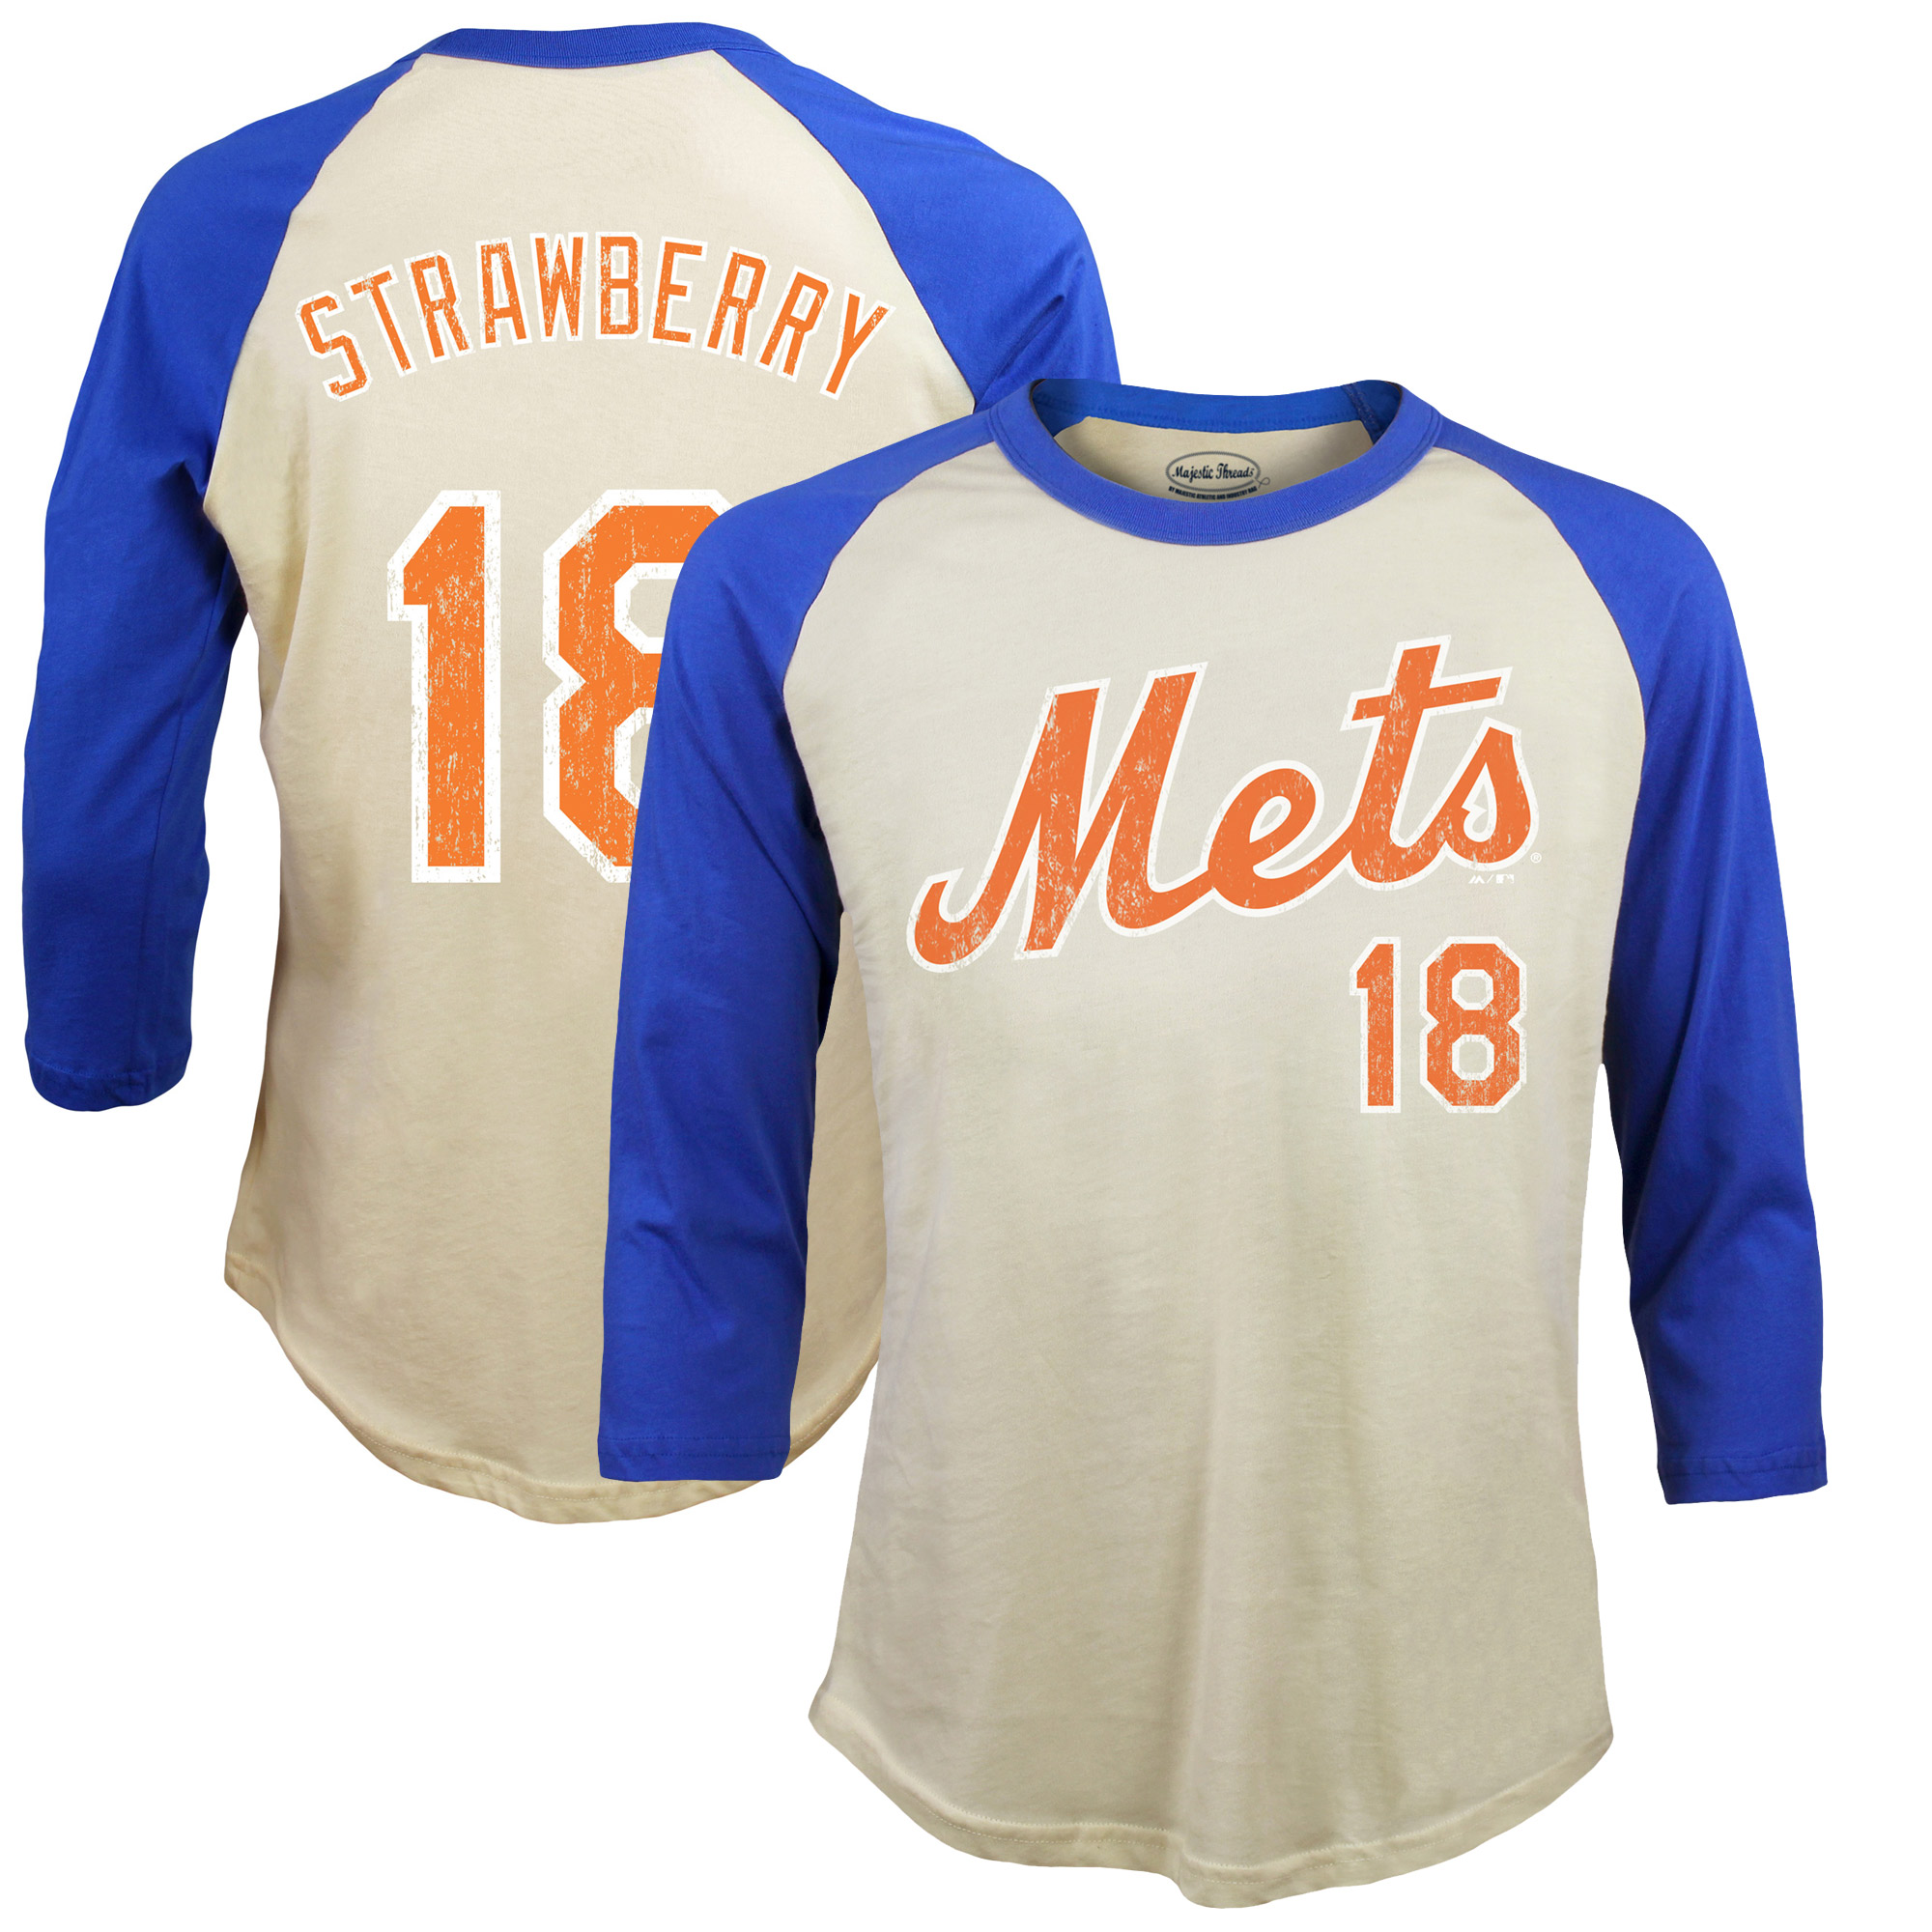 Darryl Strawberry New York Mets Majestic Threads Softhand Cotton Cooperstown 3/4-Sleeve Raglan T-Shirt - Cream